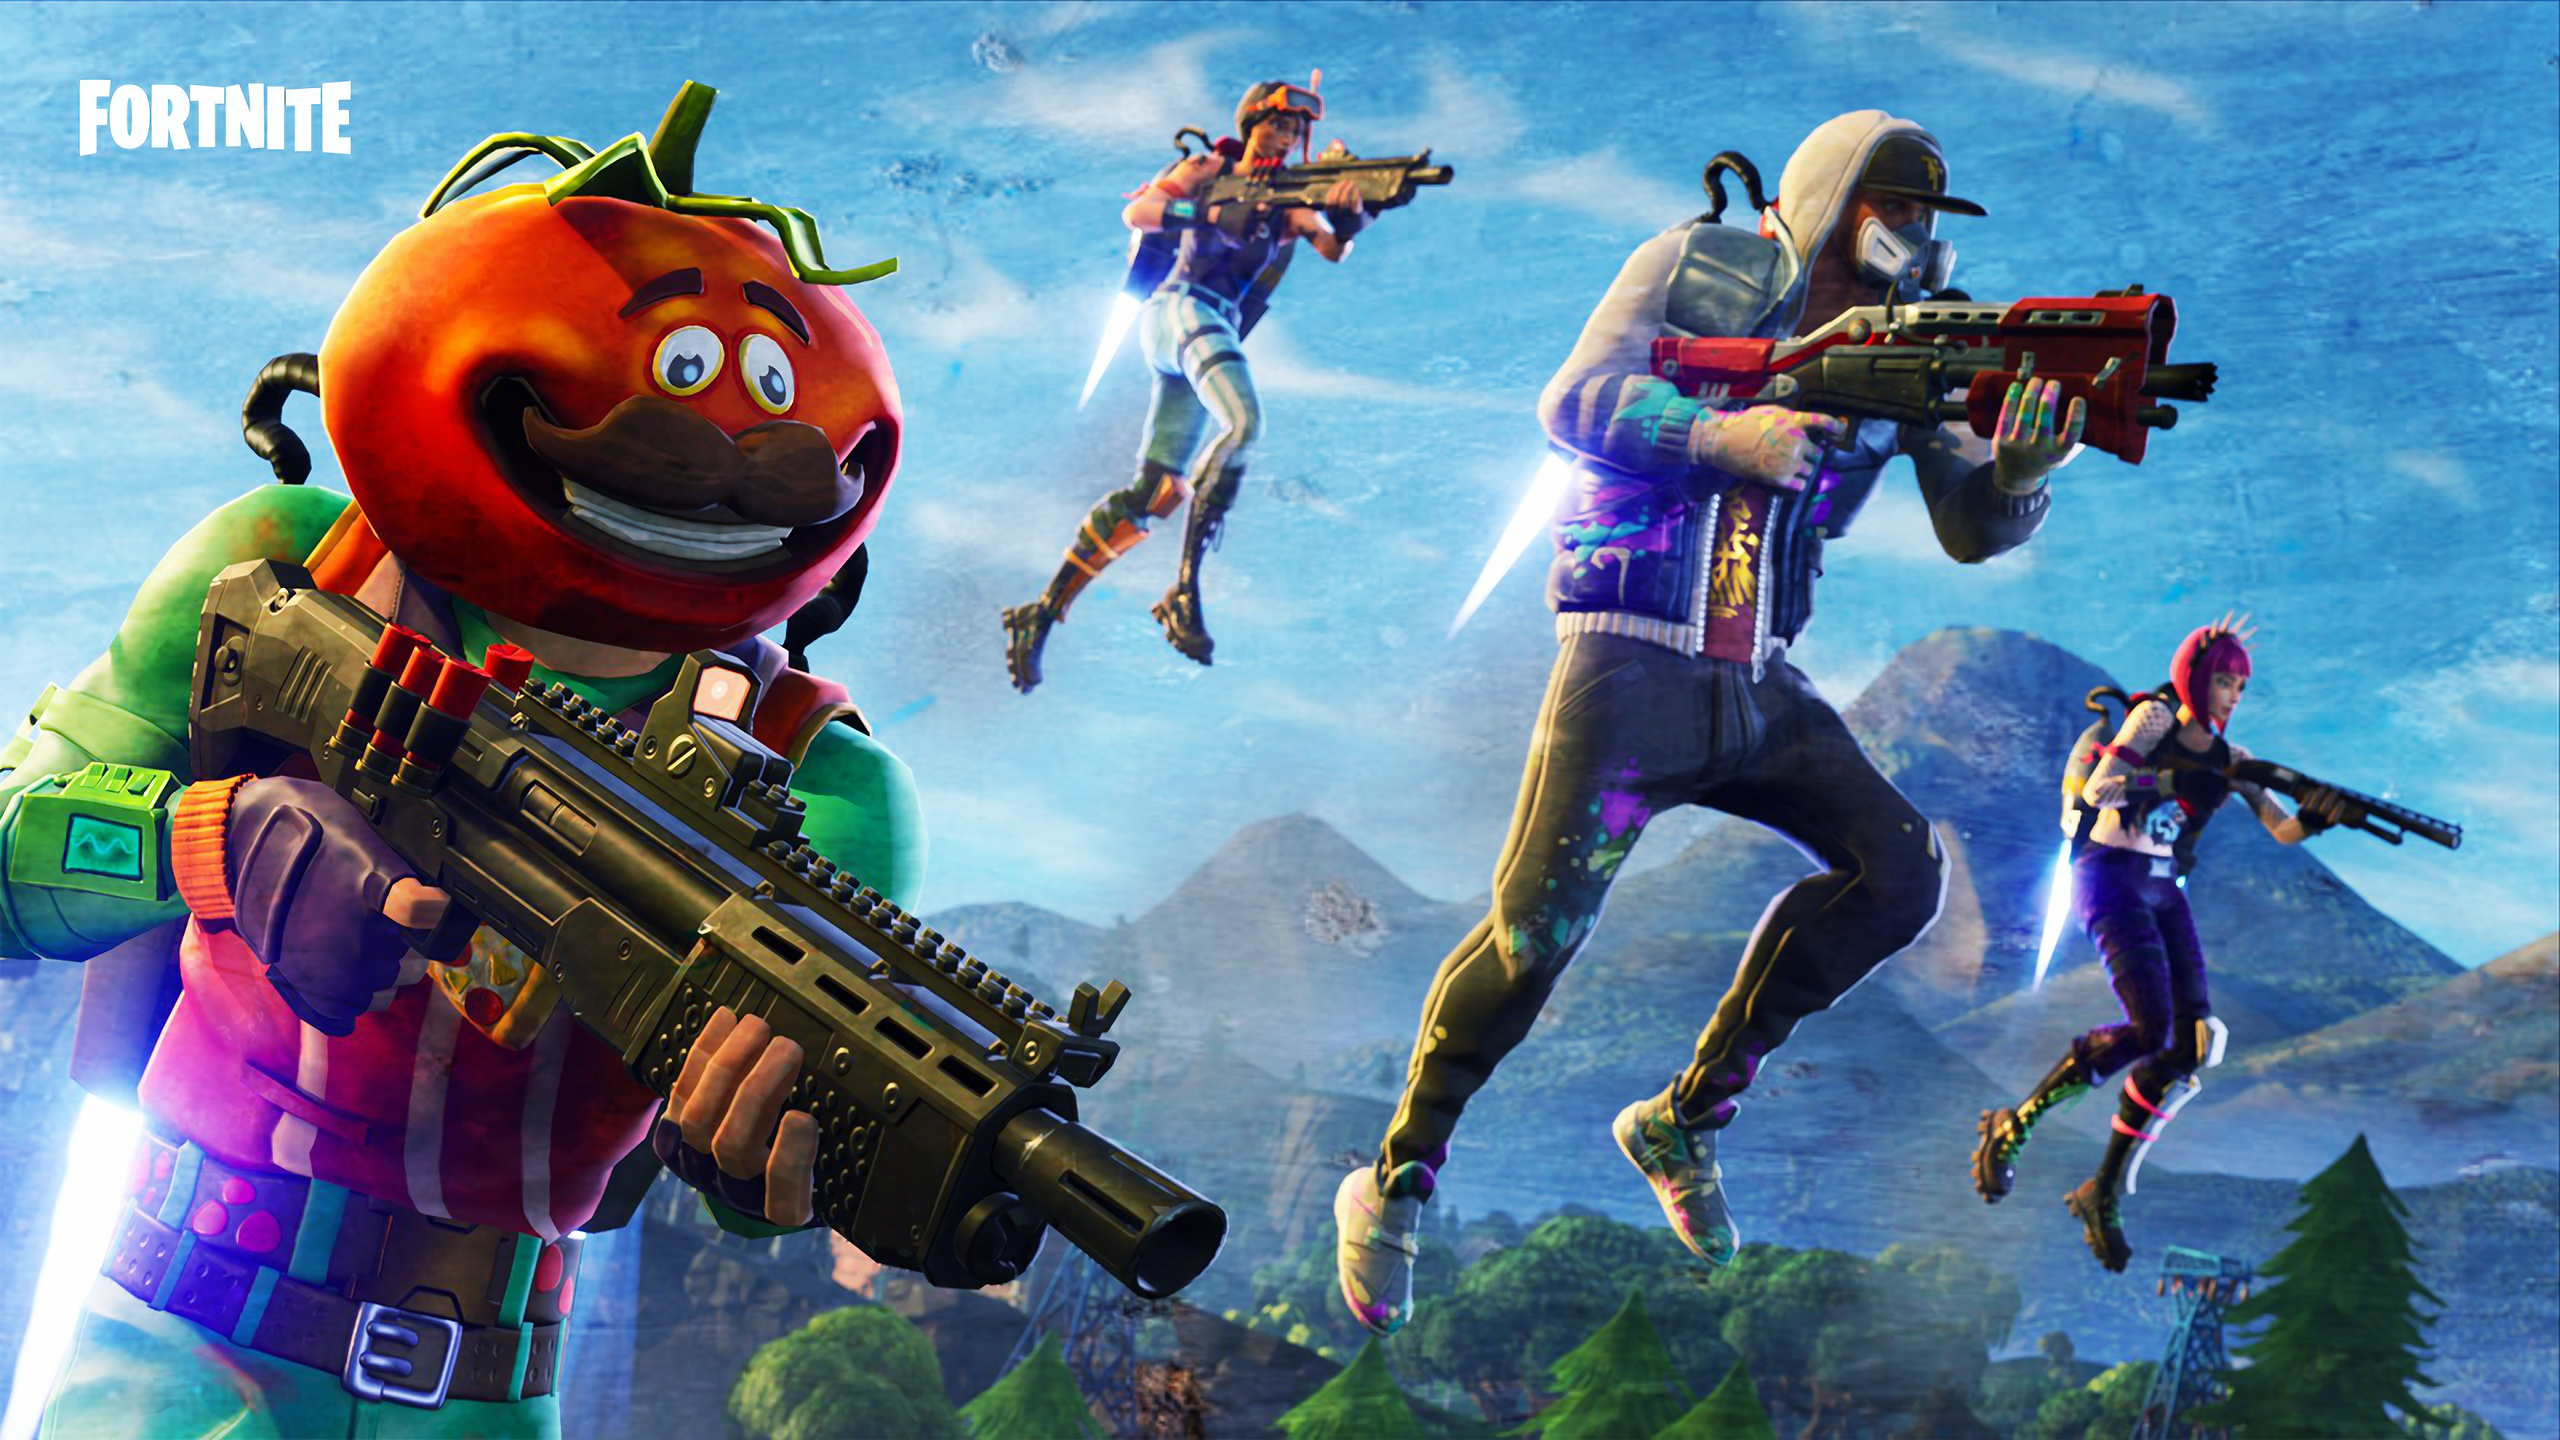 2560x1440 Fortnite 2018 Game 1440p Resolution Hd 4k